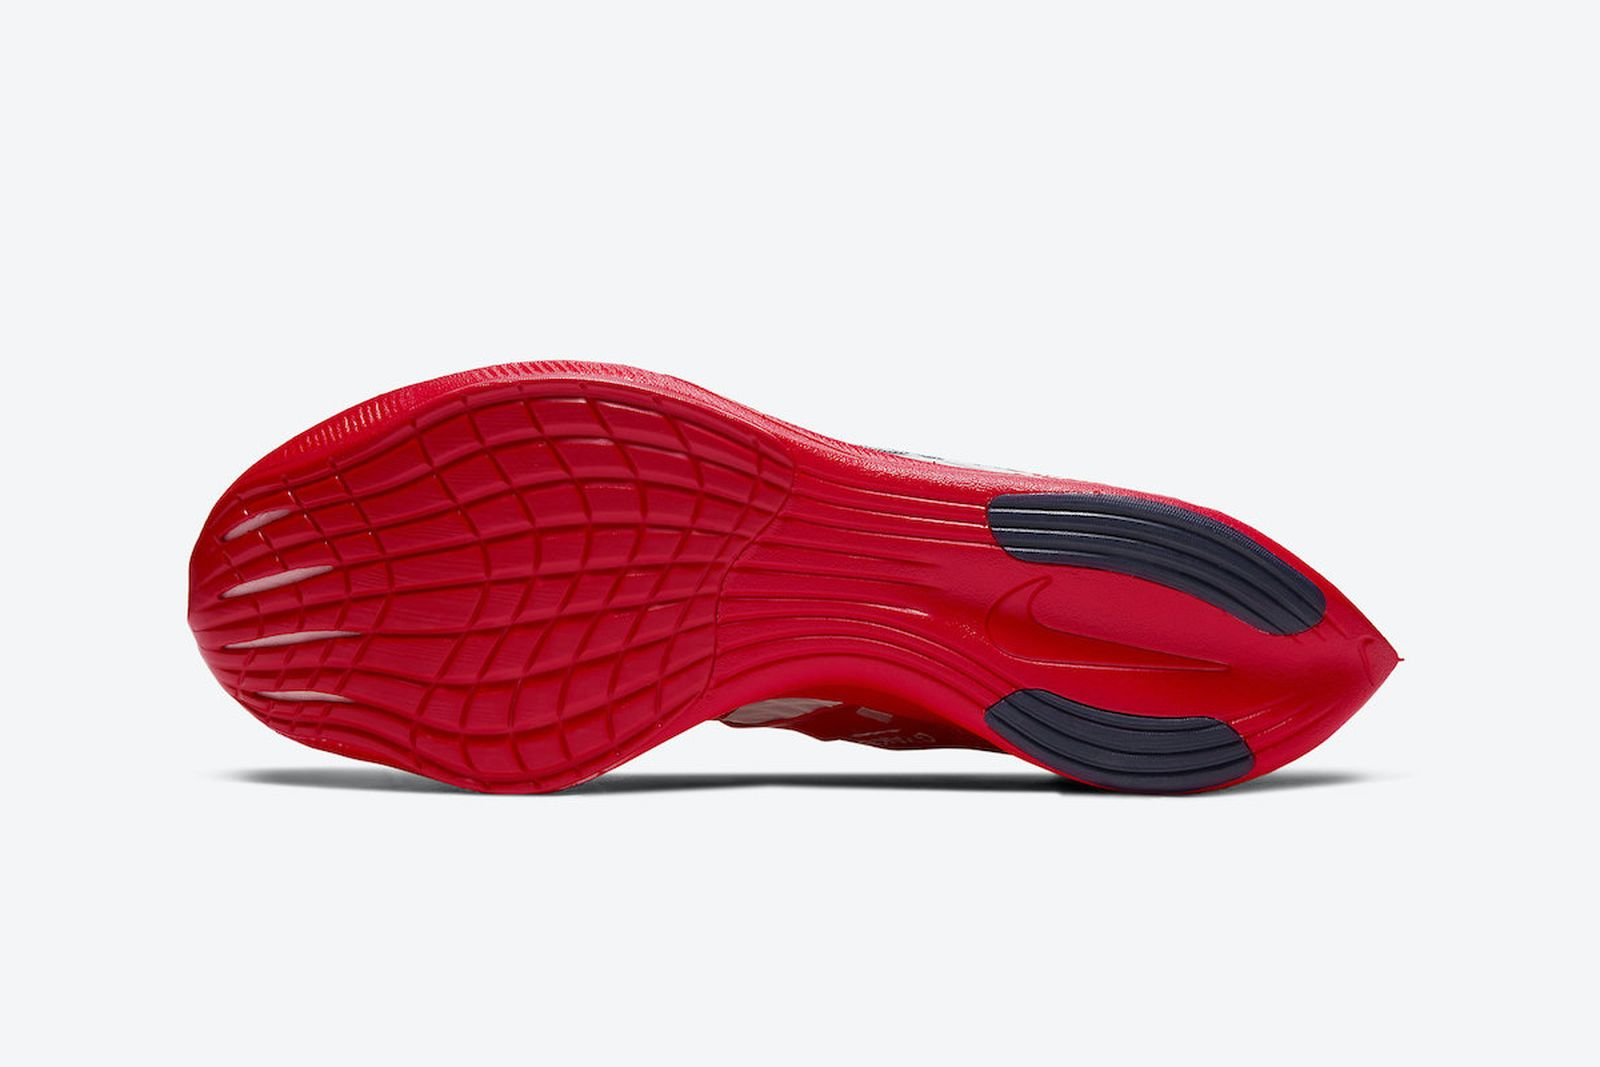 undercover-nike-zoomx-vaporfly-next-2-release-date-price-06